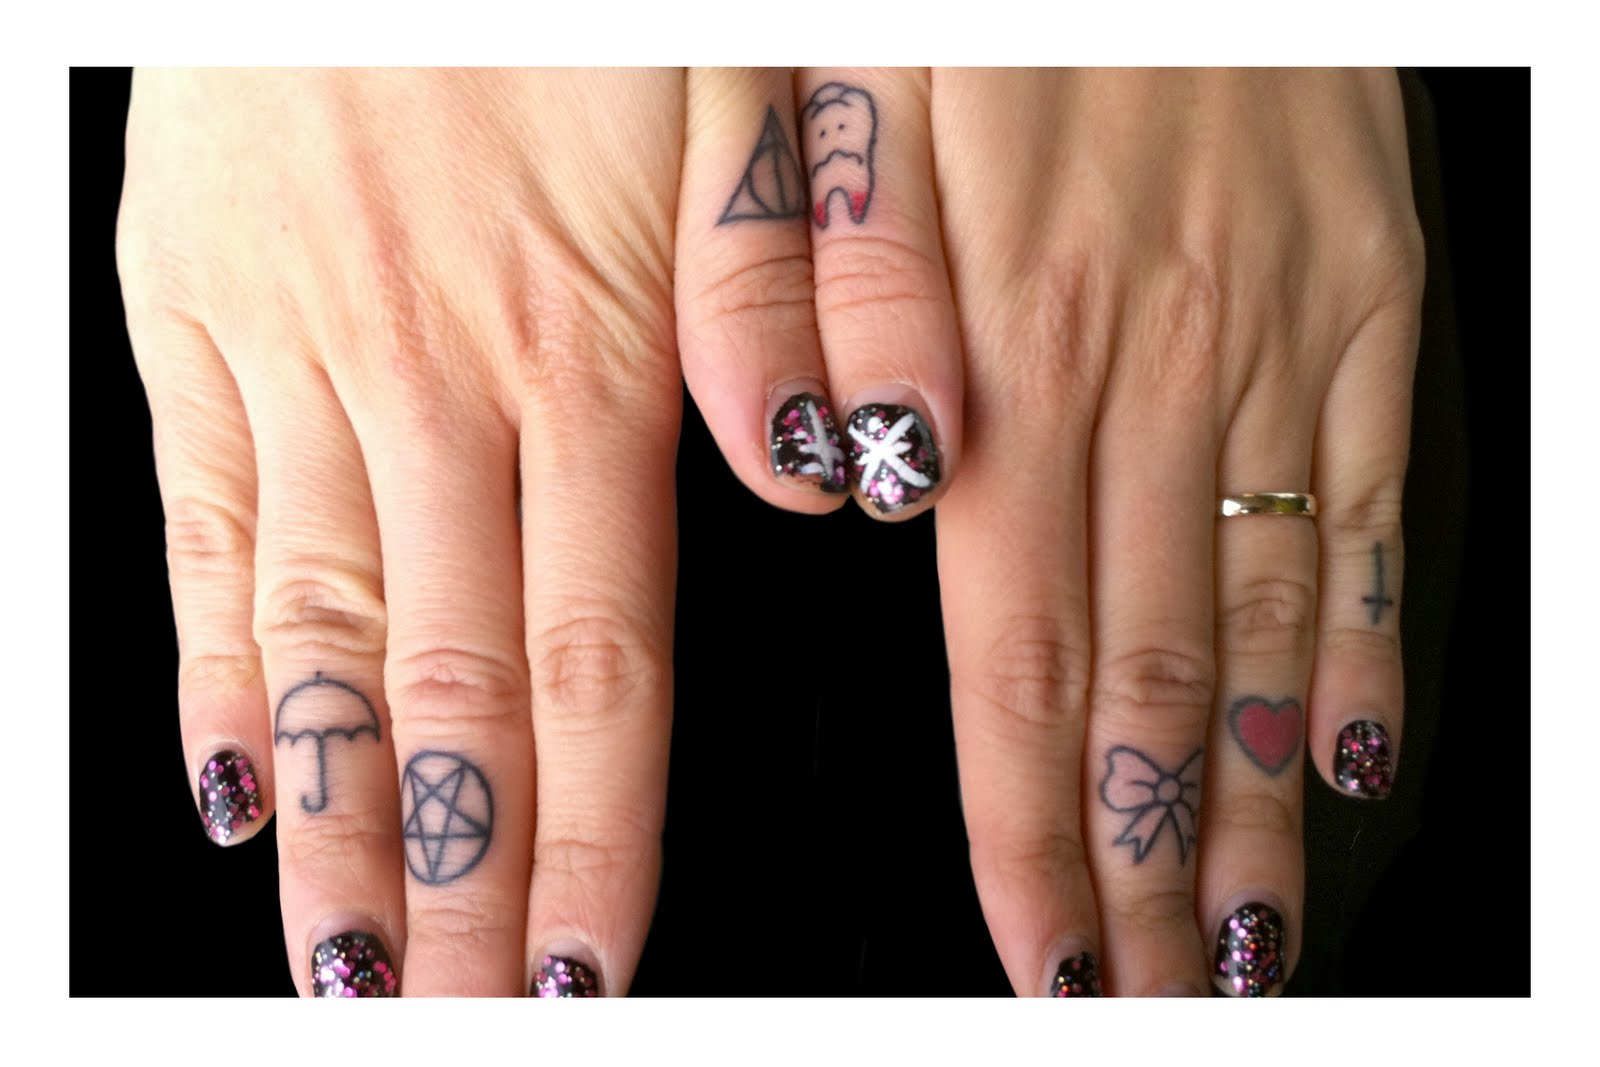 Kelco_finger_tattoo_05